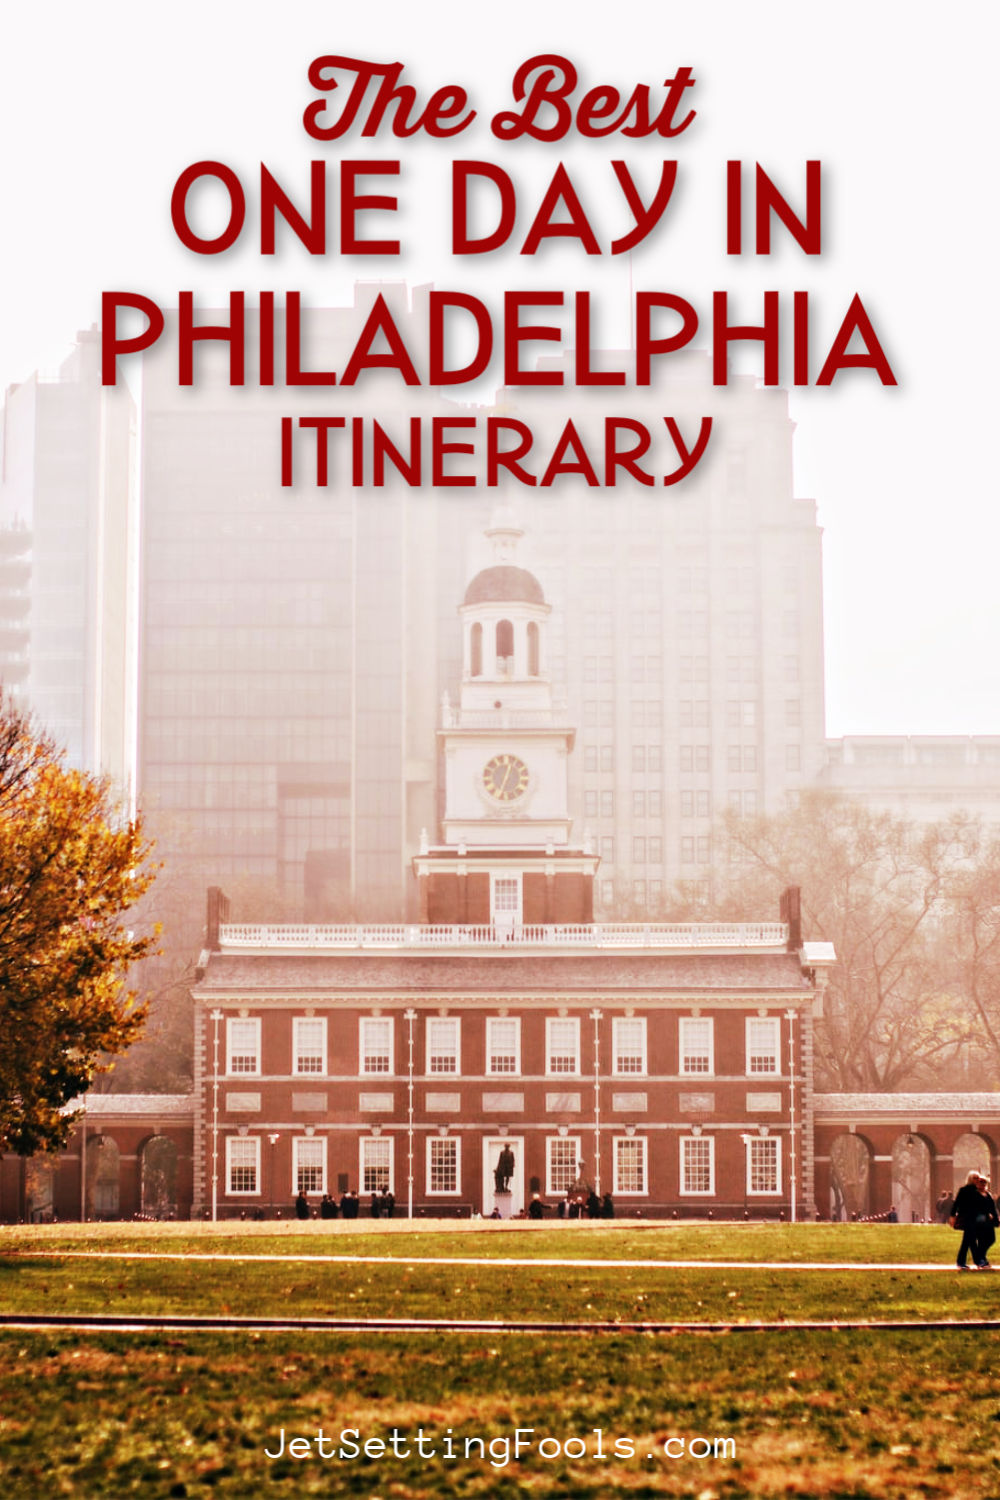 One Day in Philadelphia Itinerary by JetSettingFools.com